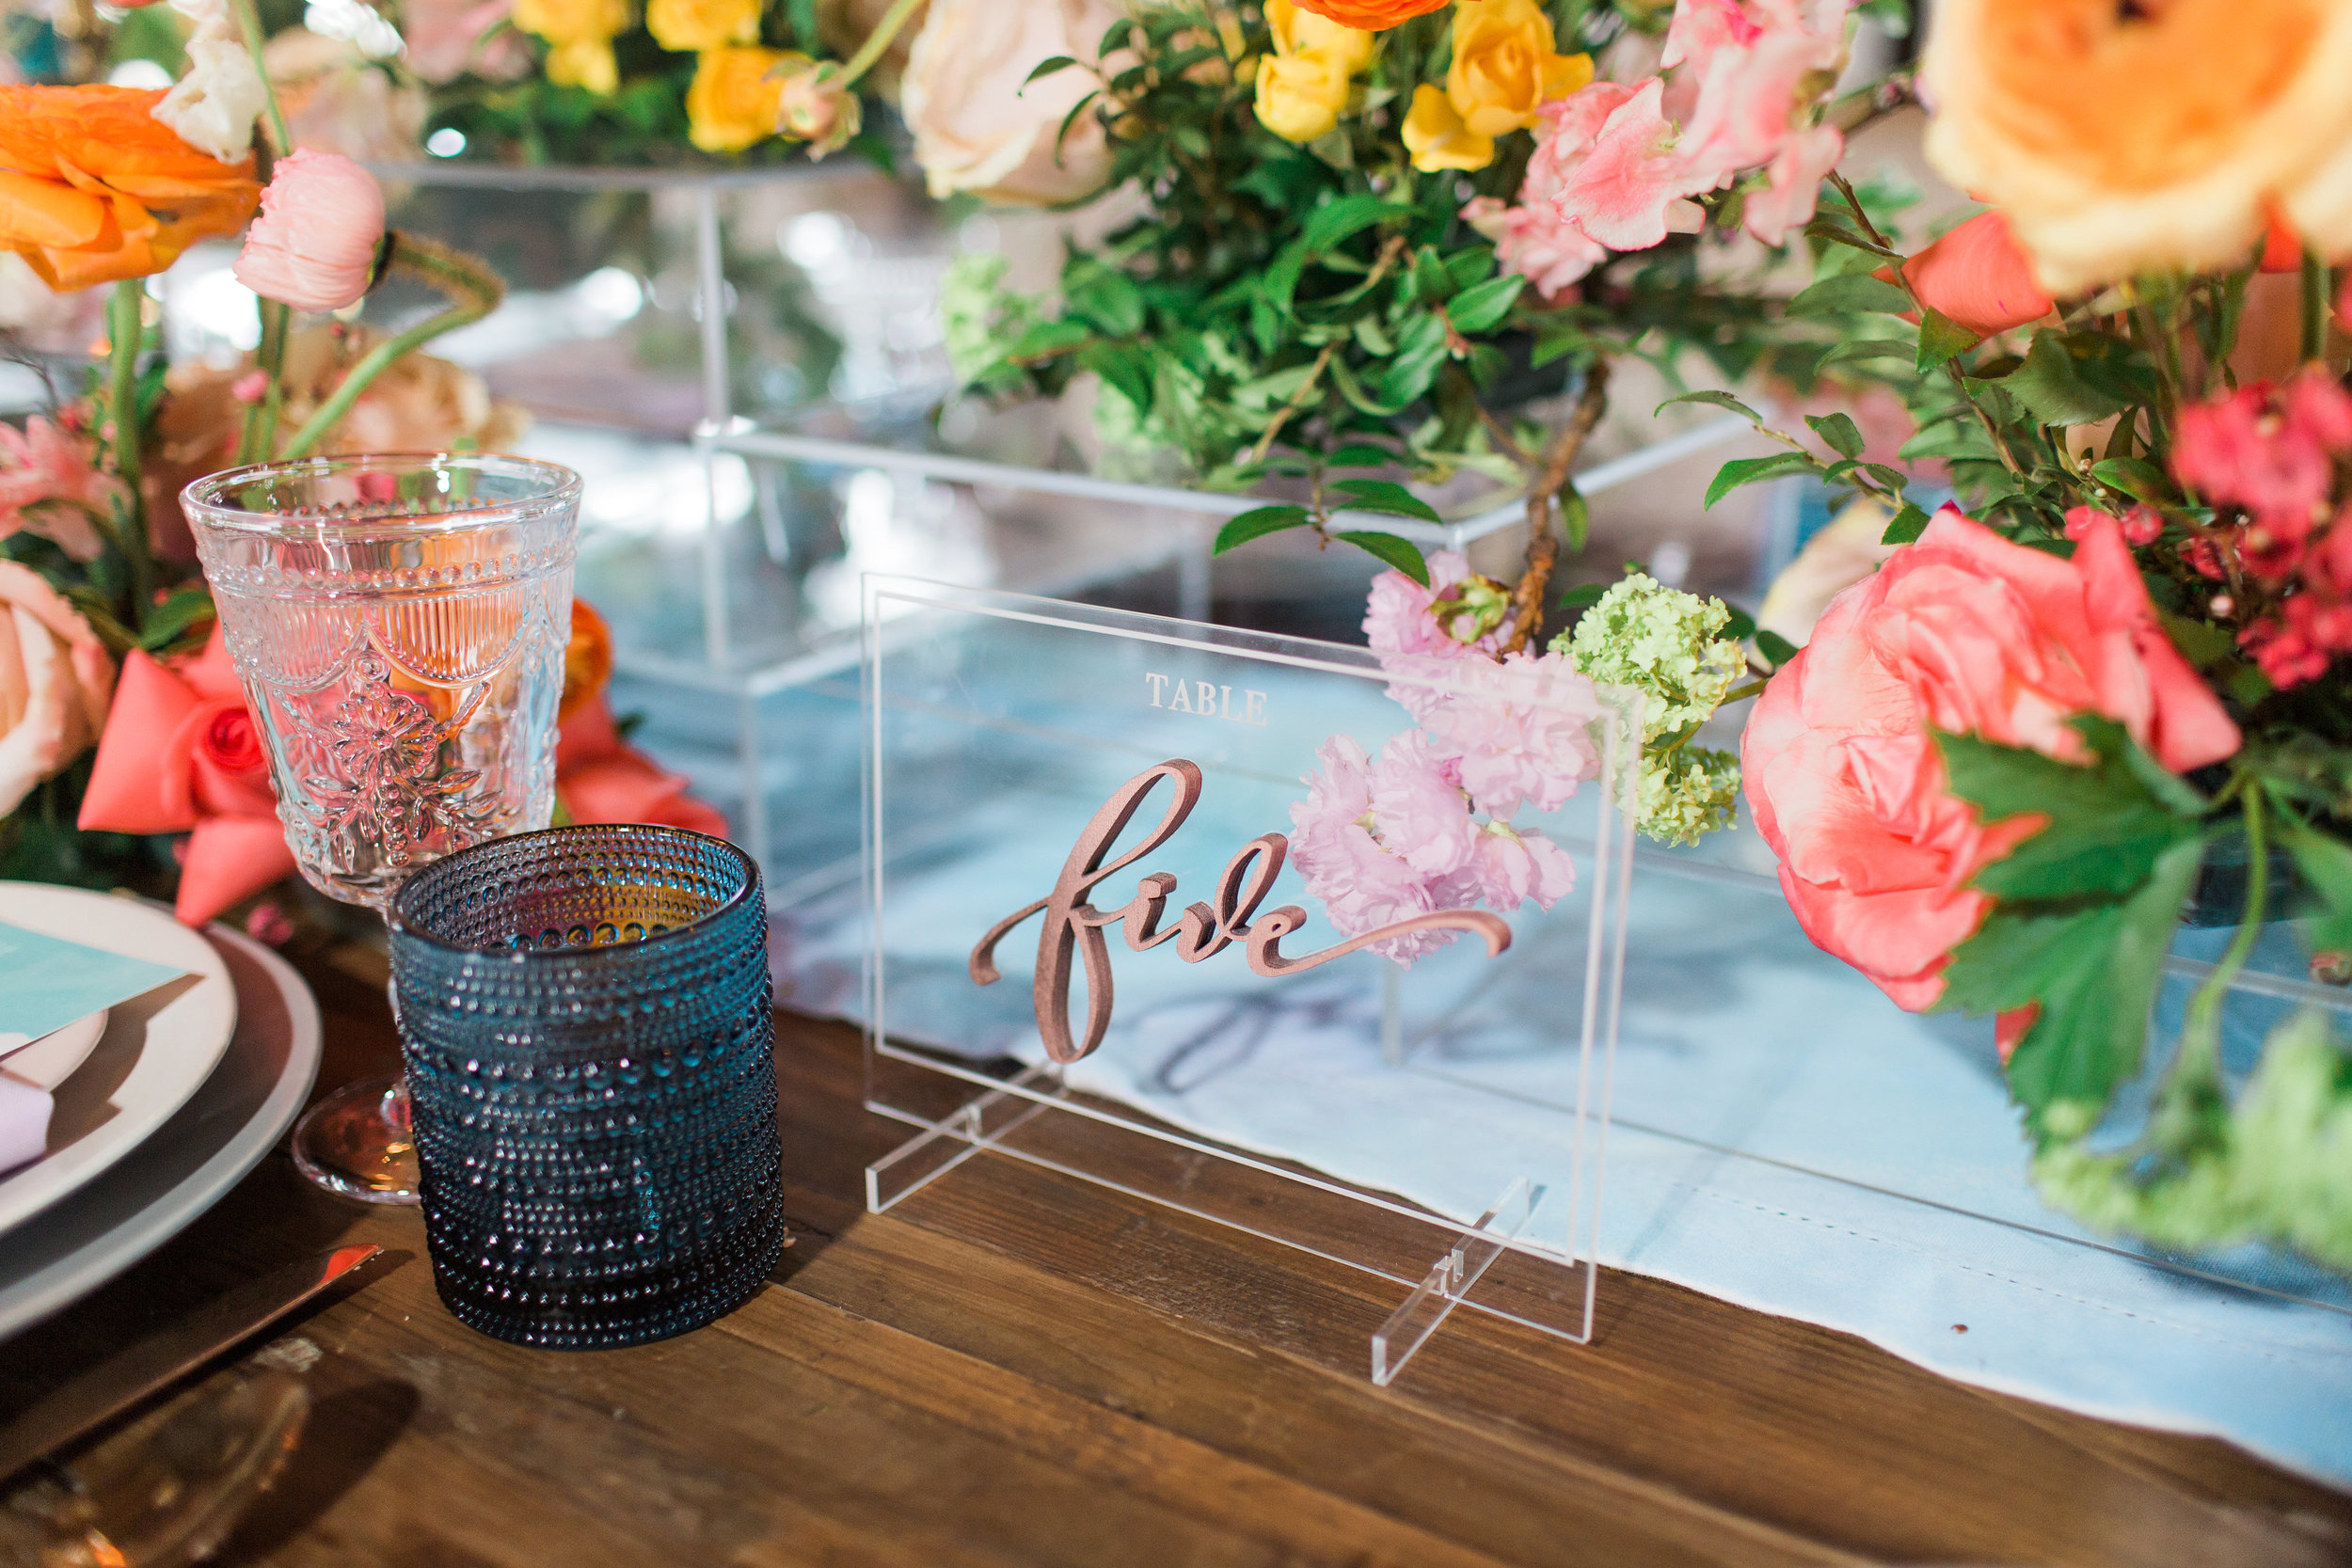 ColorfulOceanfrontWeddingInspiration-OleHanson-SanClemente,Ca-WeddingPhotographer-LovisaPhoto-216.jpg